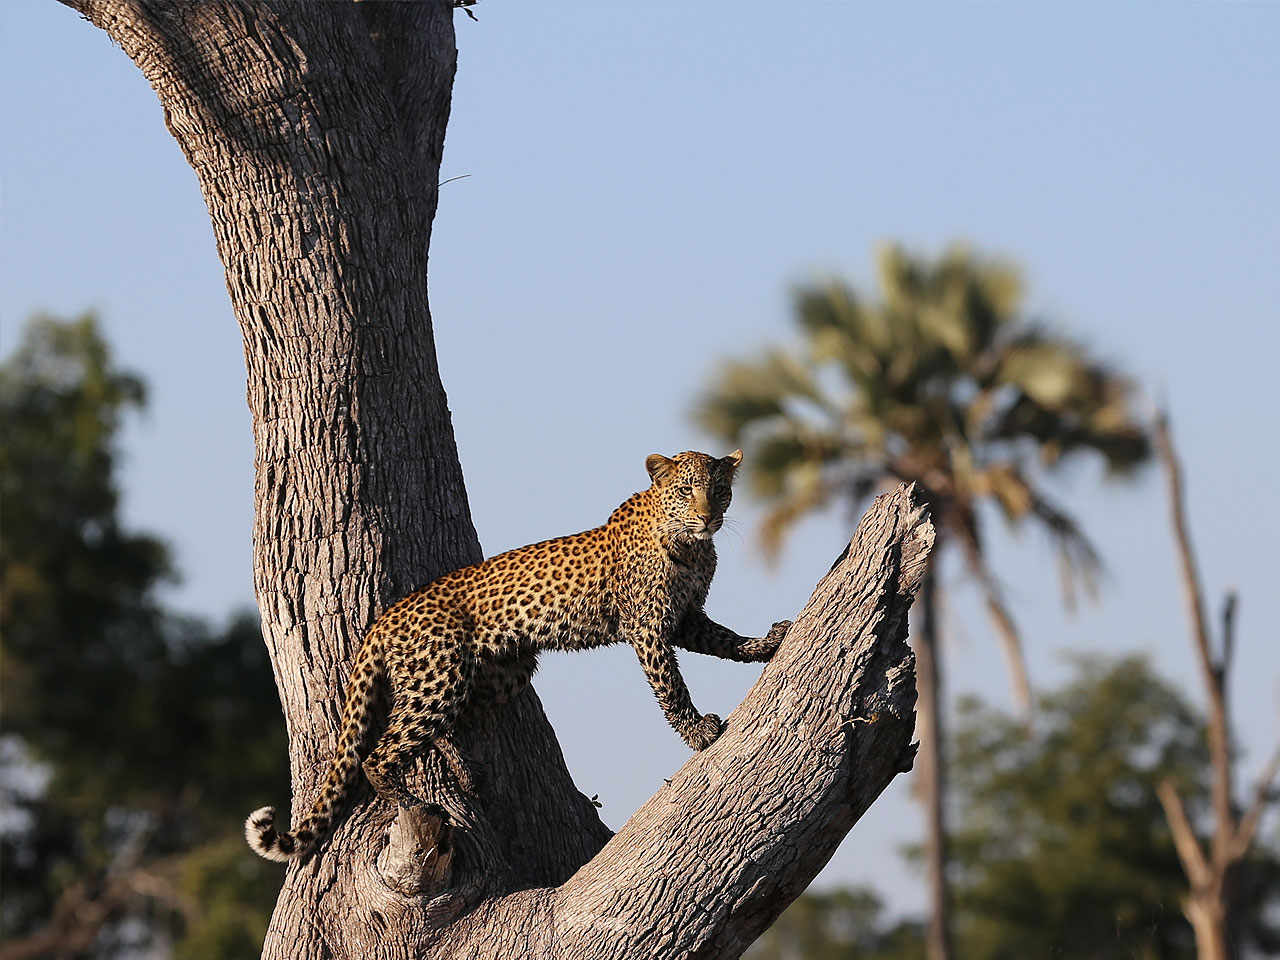 A leopard posing in a dead tree looking into the distance.